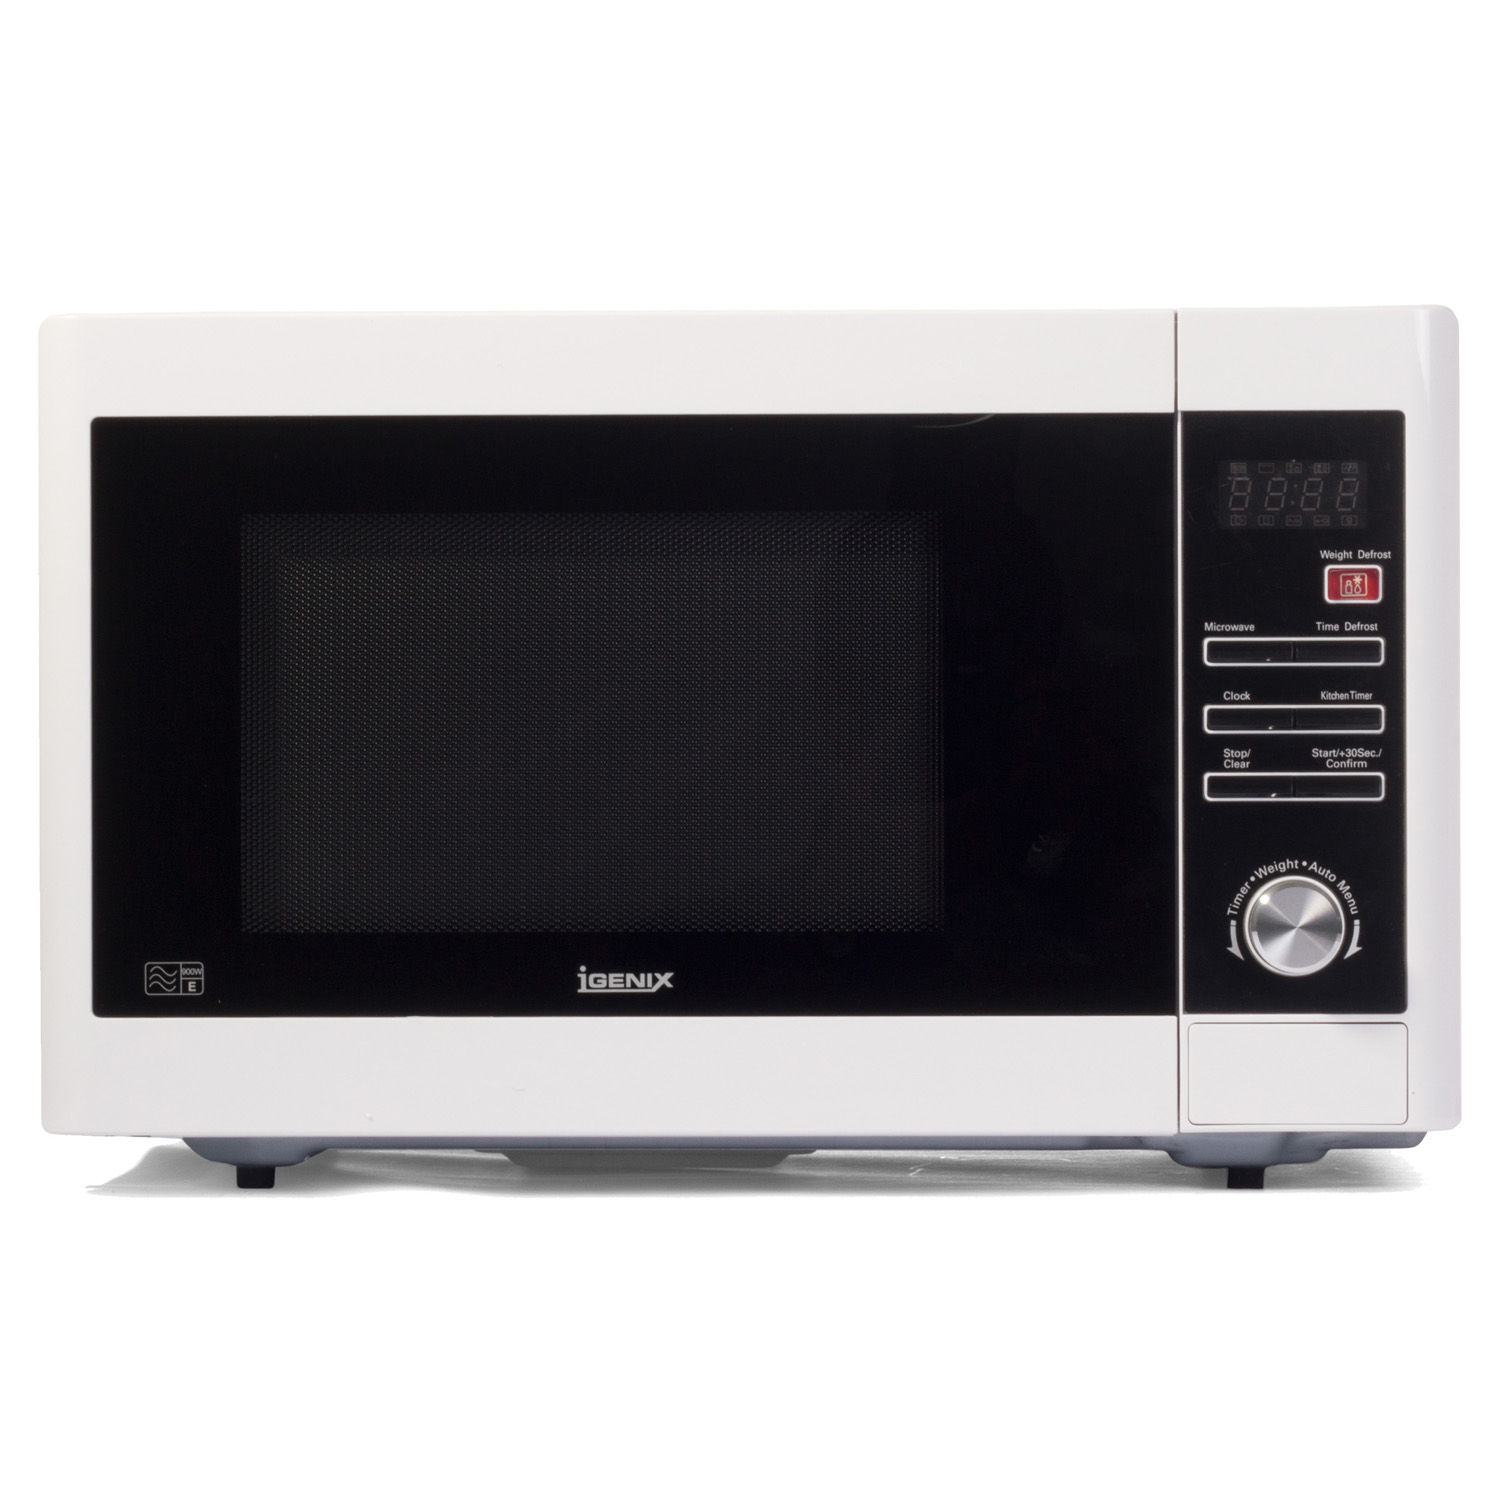 Image of Igenix 900w Digital Microwave, White